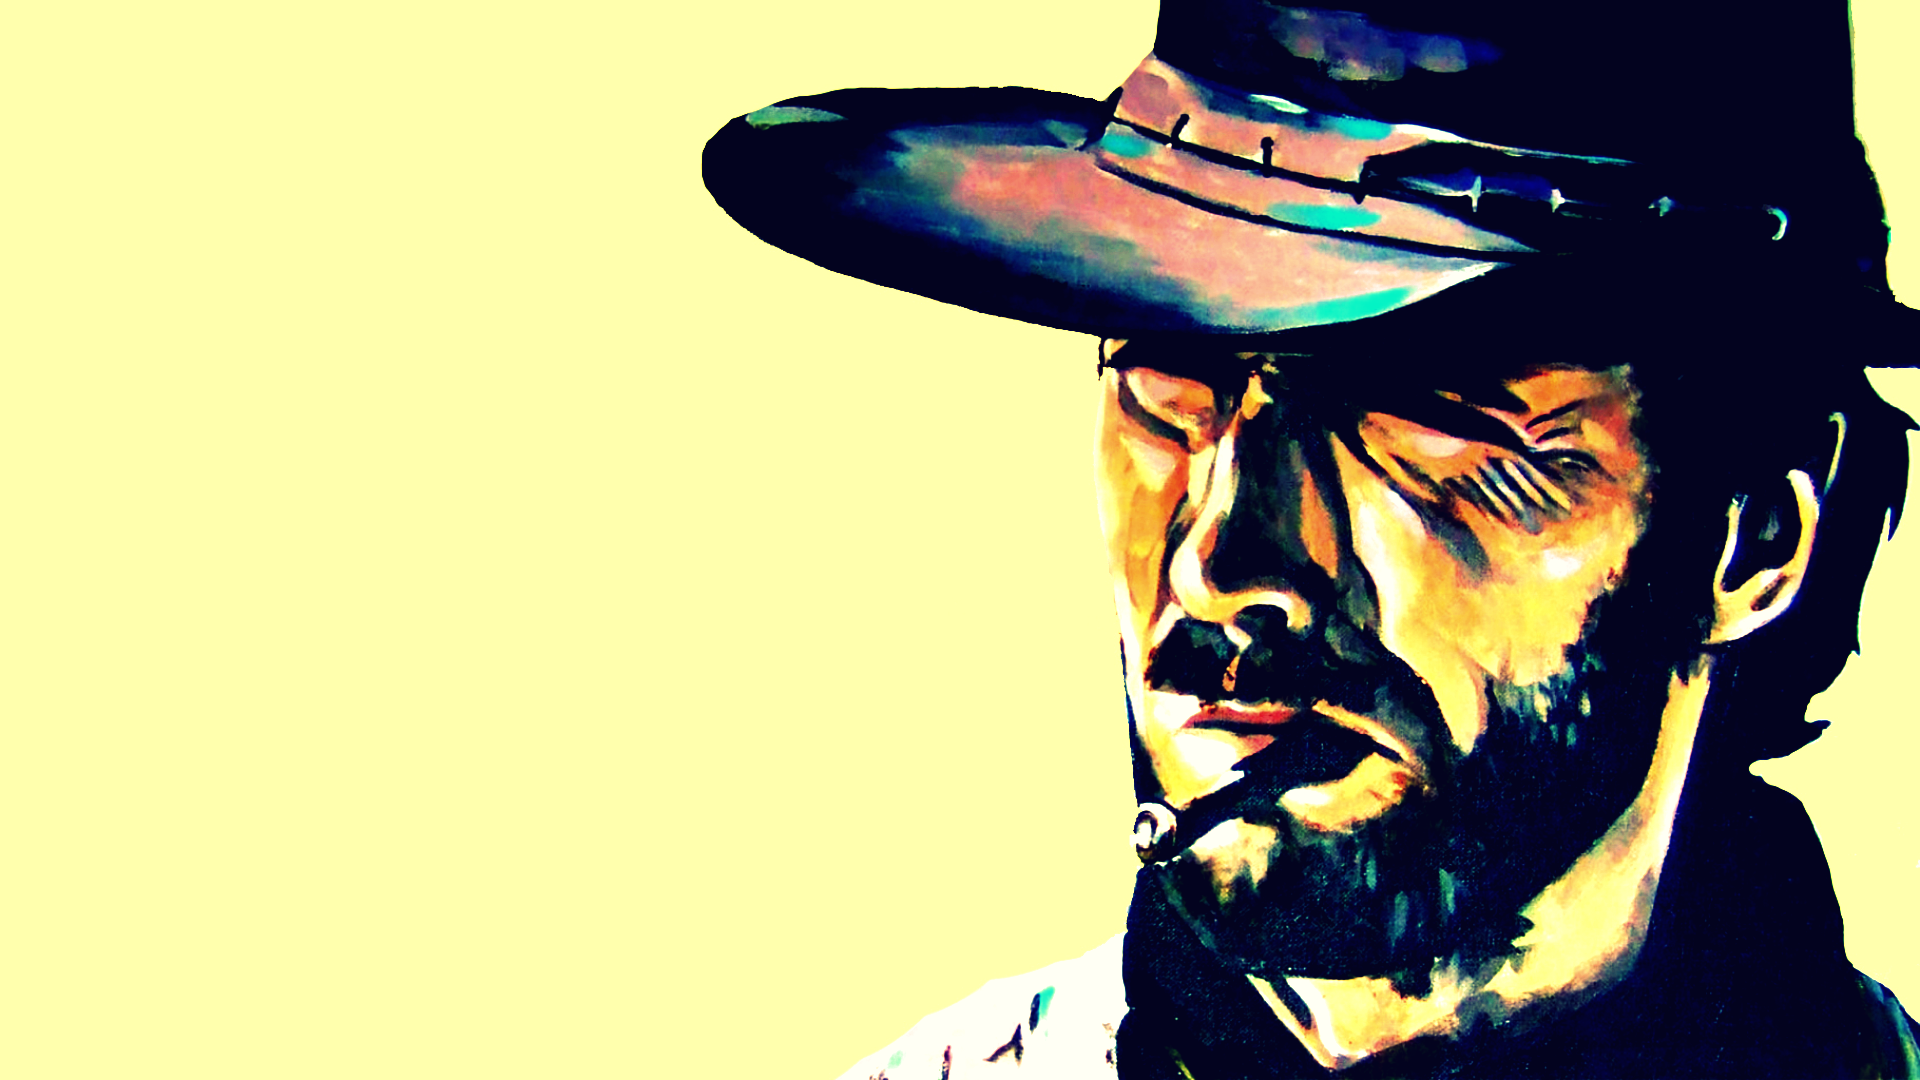 Clint Eastwood Cowboy Wallpaper: Clint Eastwood Full HD Wallpaper And Background Image